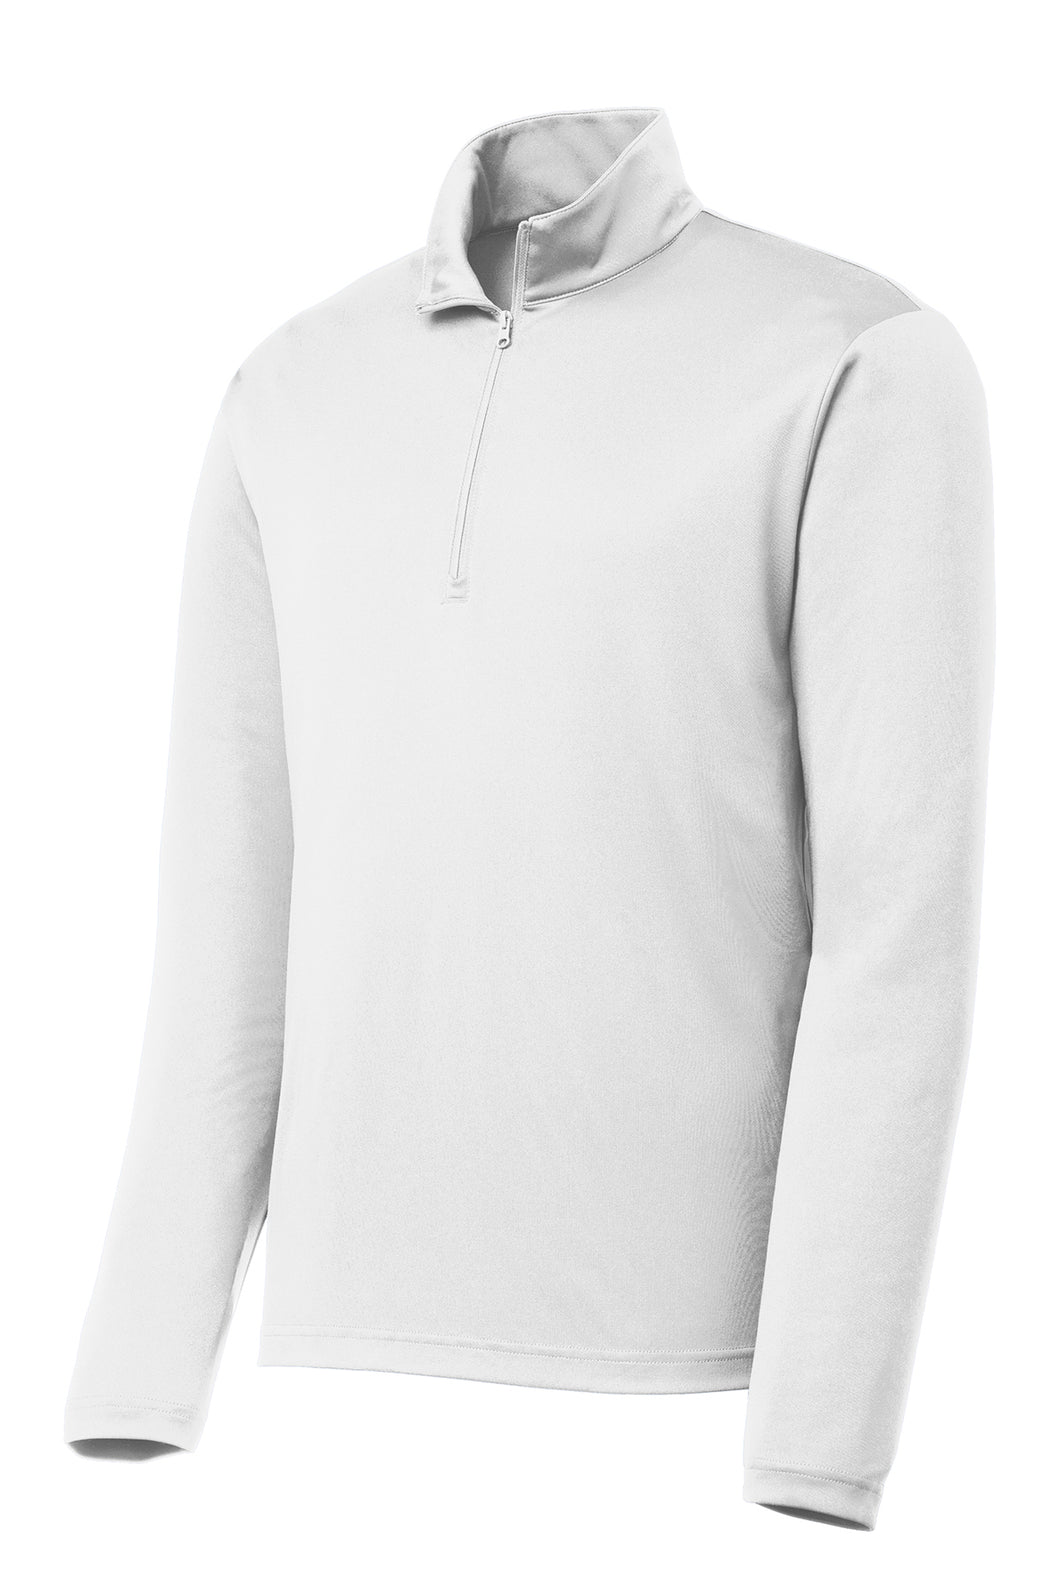 Quarter-zip Comfort Performance Pullover - White